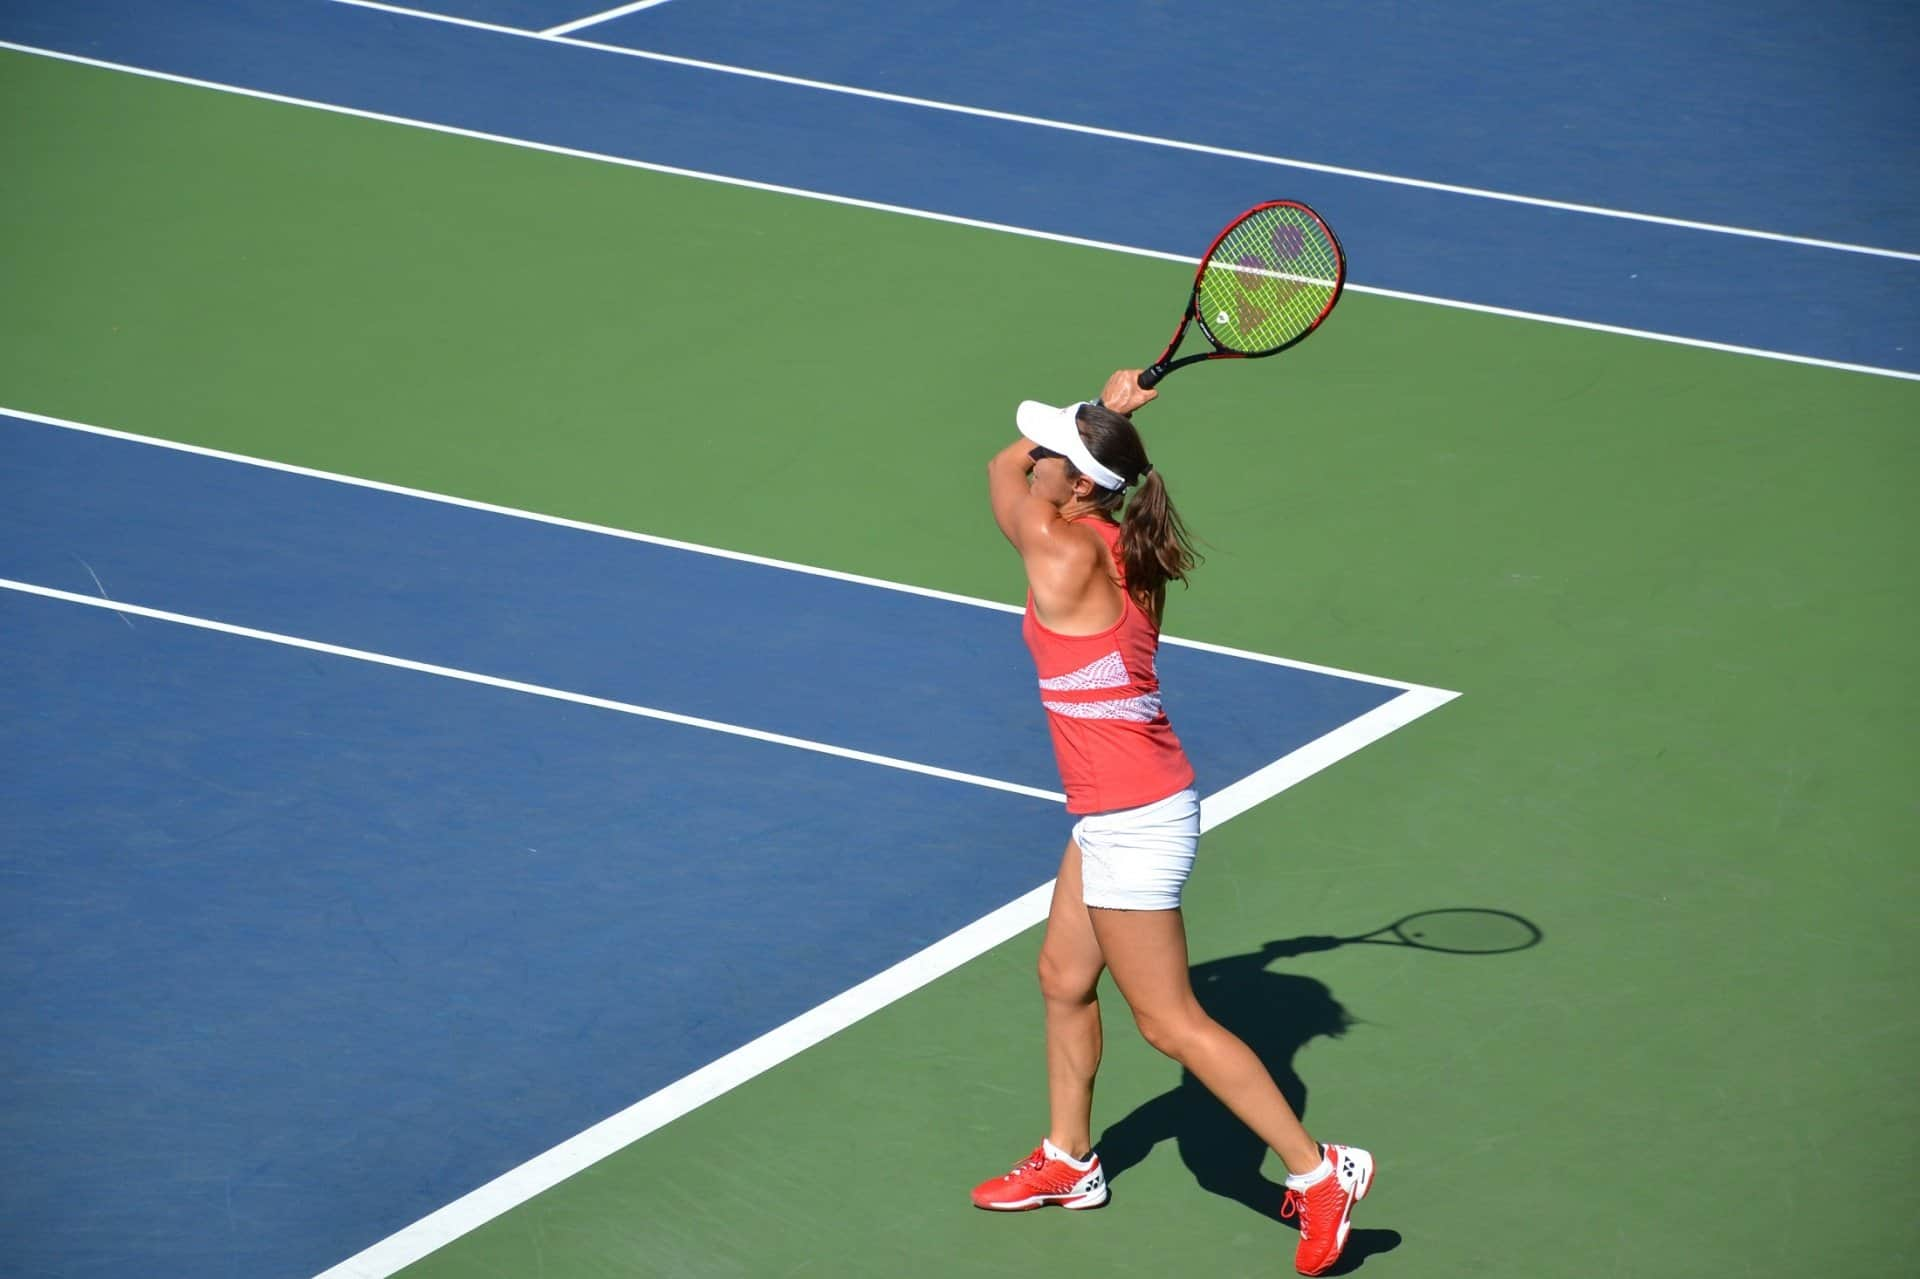 Common Tennis Questions - A person hitting a ball with a racket on a court - Tennis